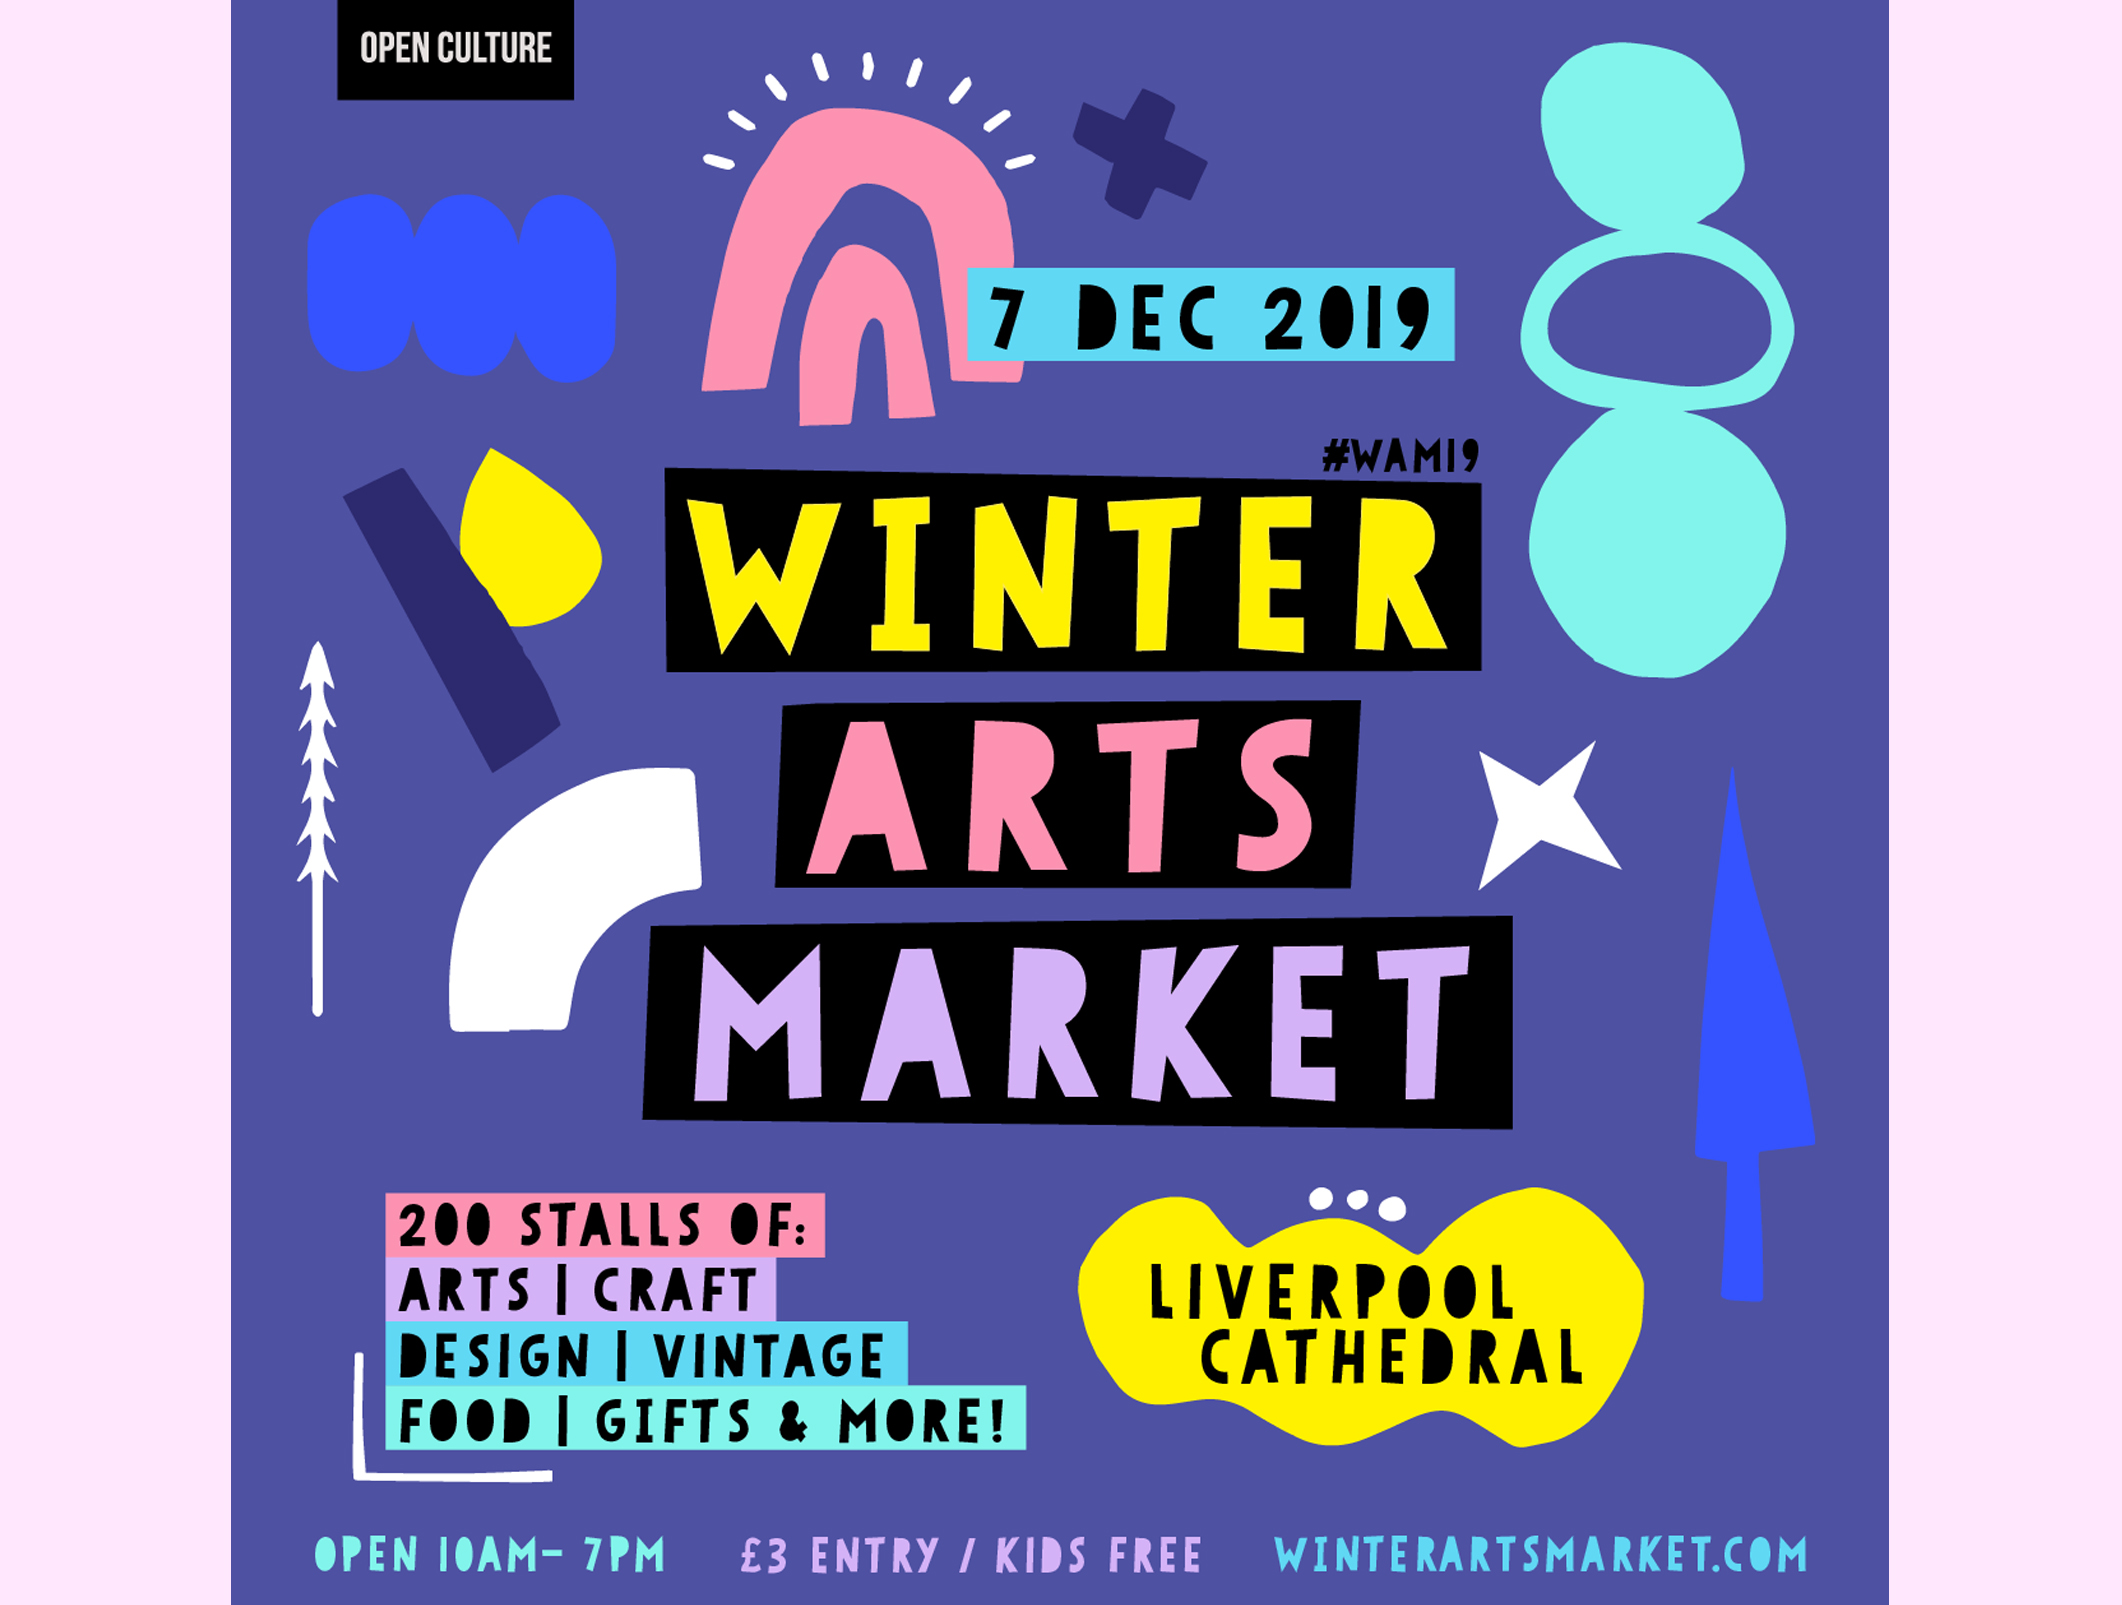 Winter Arts Market, Liverpool - 7th December, Liverpool Cathedral 10am - 7pm